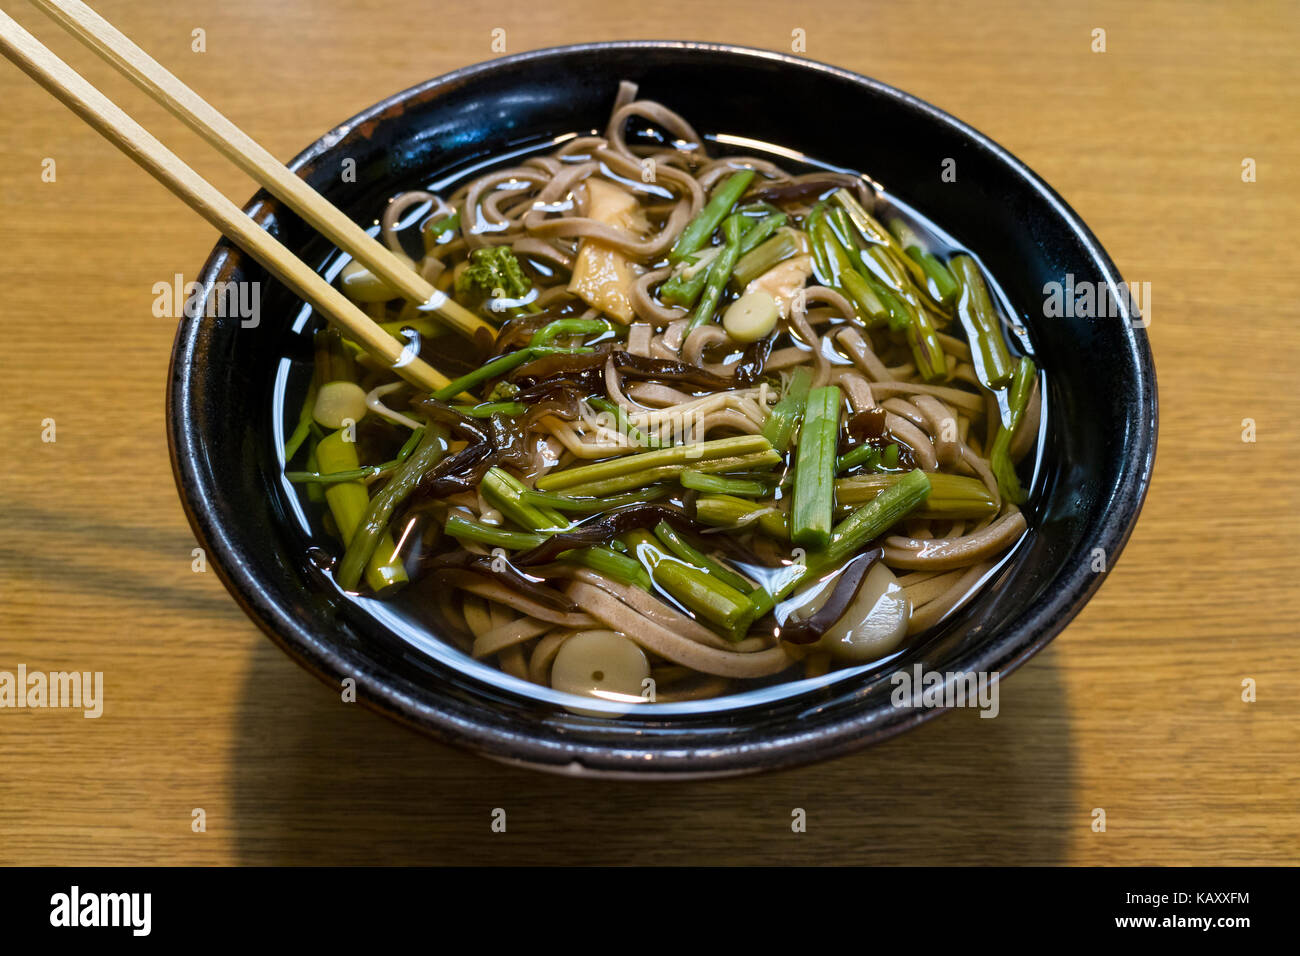 Bowl With Hot Japanese Soba Noodles And Vegetables Stock